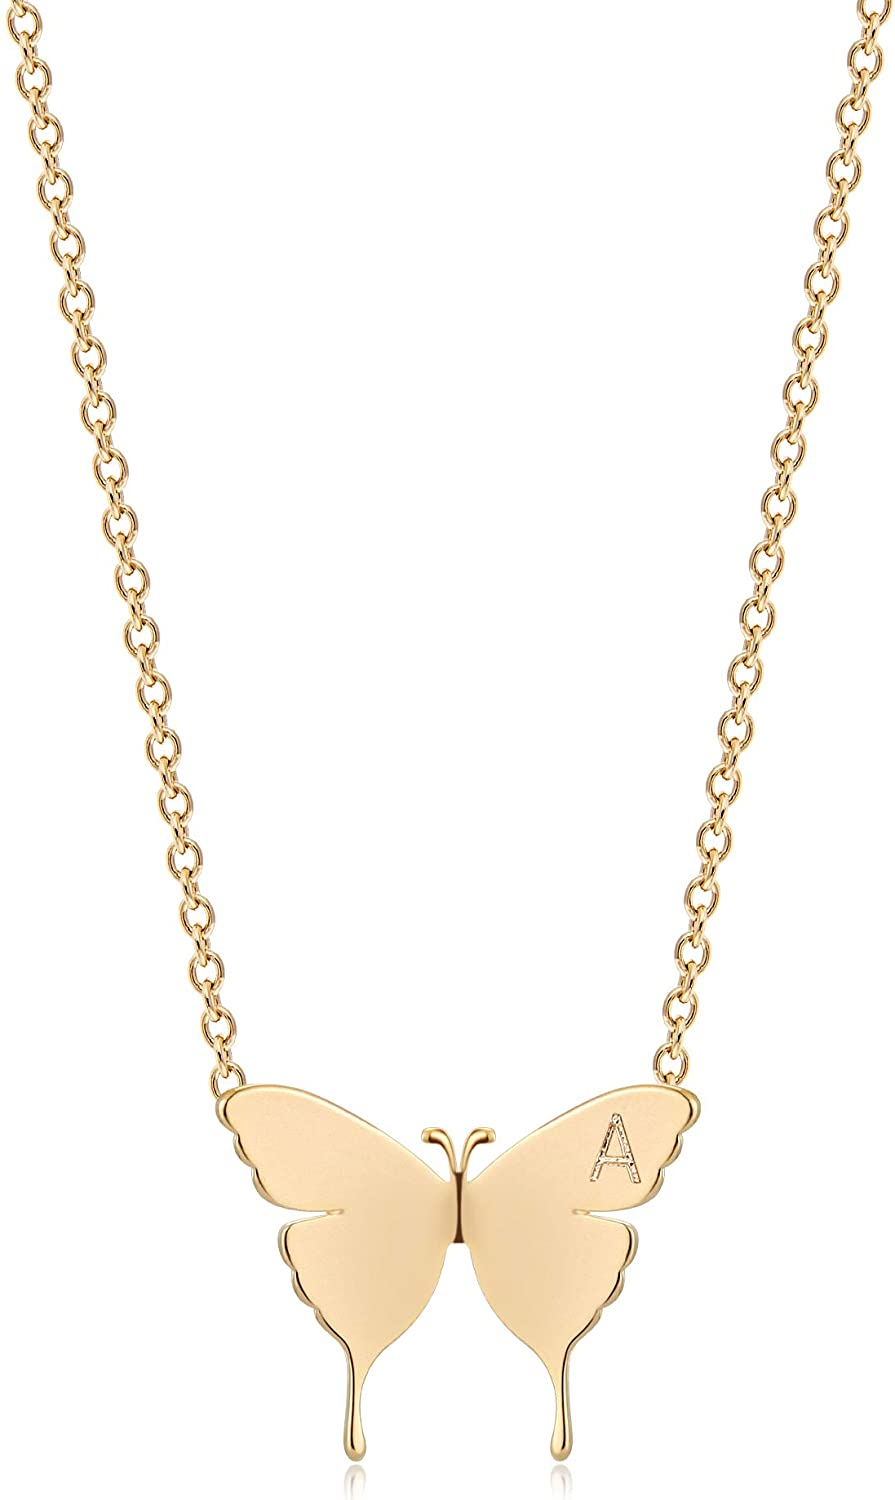 WEARON Gold Dainty Butterfly Necklace,18K Gold Plated Tiny Butterfly Charm Necklace Initial Necklace Butterfly Pendant Necklaces Delicate Everyday Necklace for Women Minimalist Personalized Jewelry